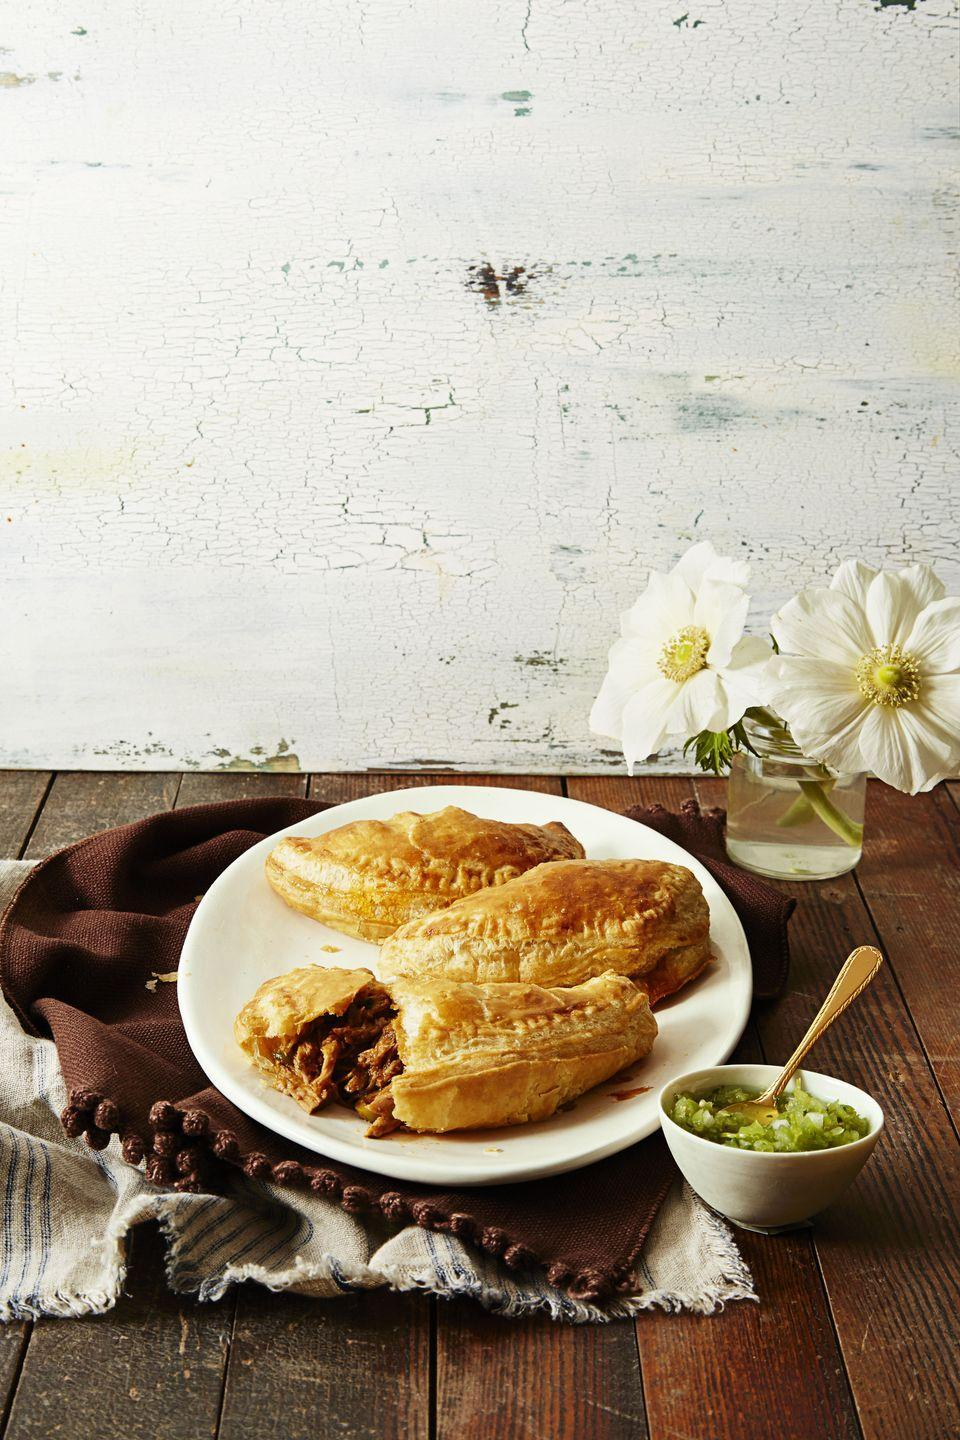 "<p>Wrap those leftovers in puff pastry blankets and you have a completely different, delicious dinner.</p><p><a href=""https://www.goodhousekeeping.com/food-recipes/a37308/quick-n-easy-empanadas-recipe/"" rel=""nofollow noopener"" target=""_blank"" data-ylk=""slk:Get the recipe for Quick 'n' Easy Empanadas »"" class=""link rapid-noclick-resp""><em>Get the recipe for Quick 'n' Easy Empanadas »</em></a></p>"